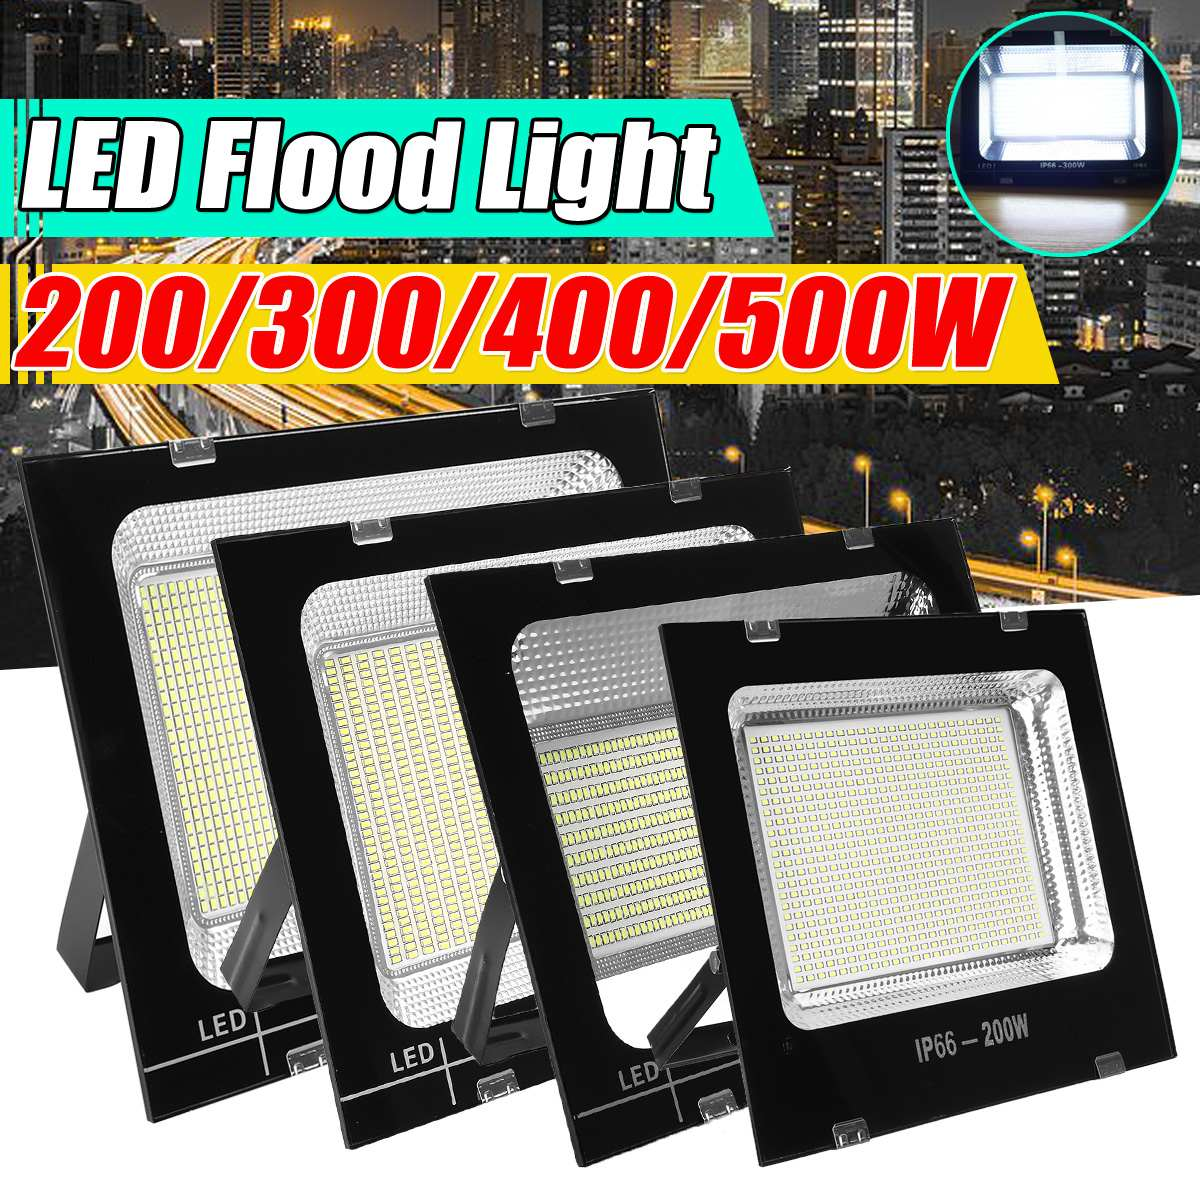 200/300/400/500W Led Flood Light Wall Lamp Outdoor Lighting Super Bright Security Lights IP66 Waterproof Floodlight Landscape